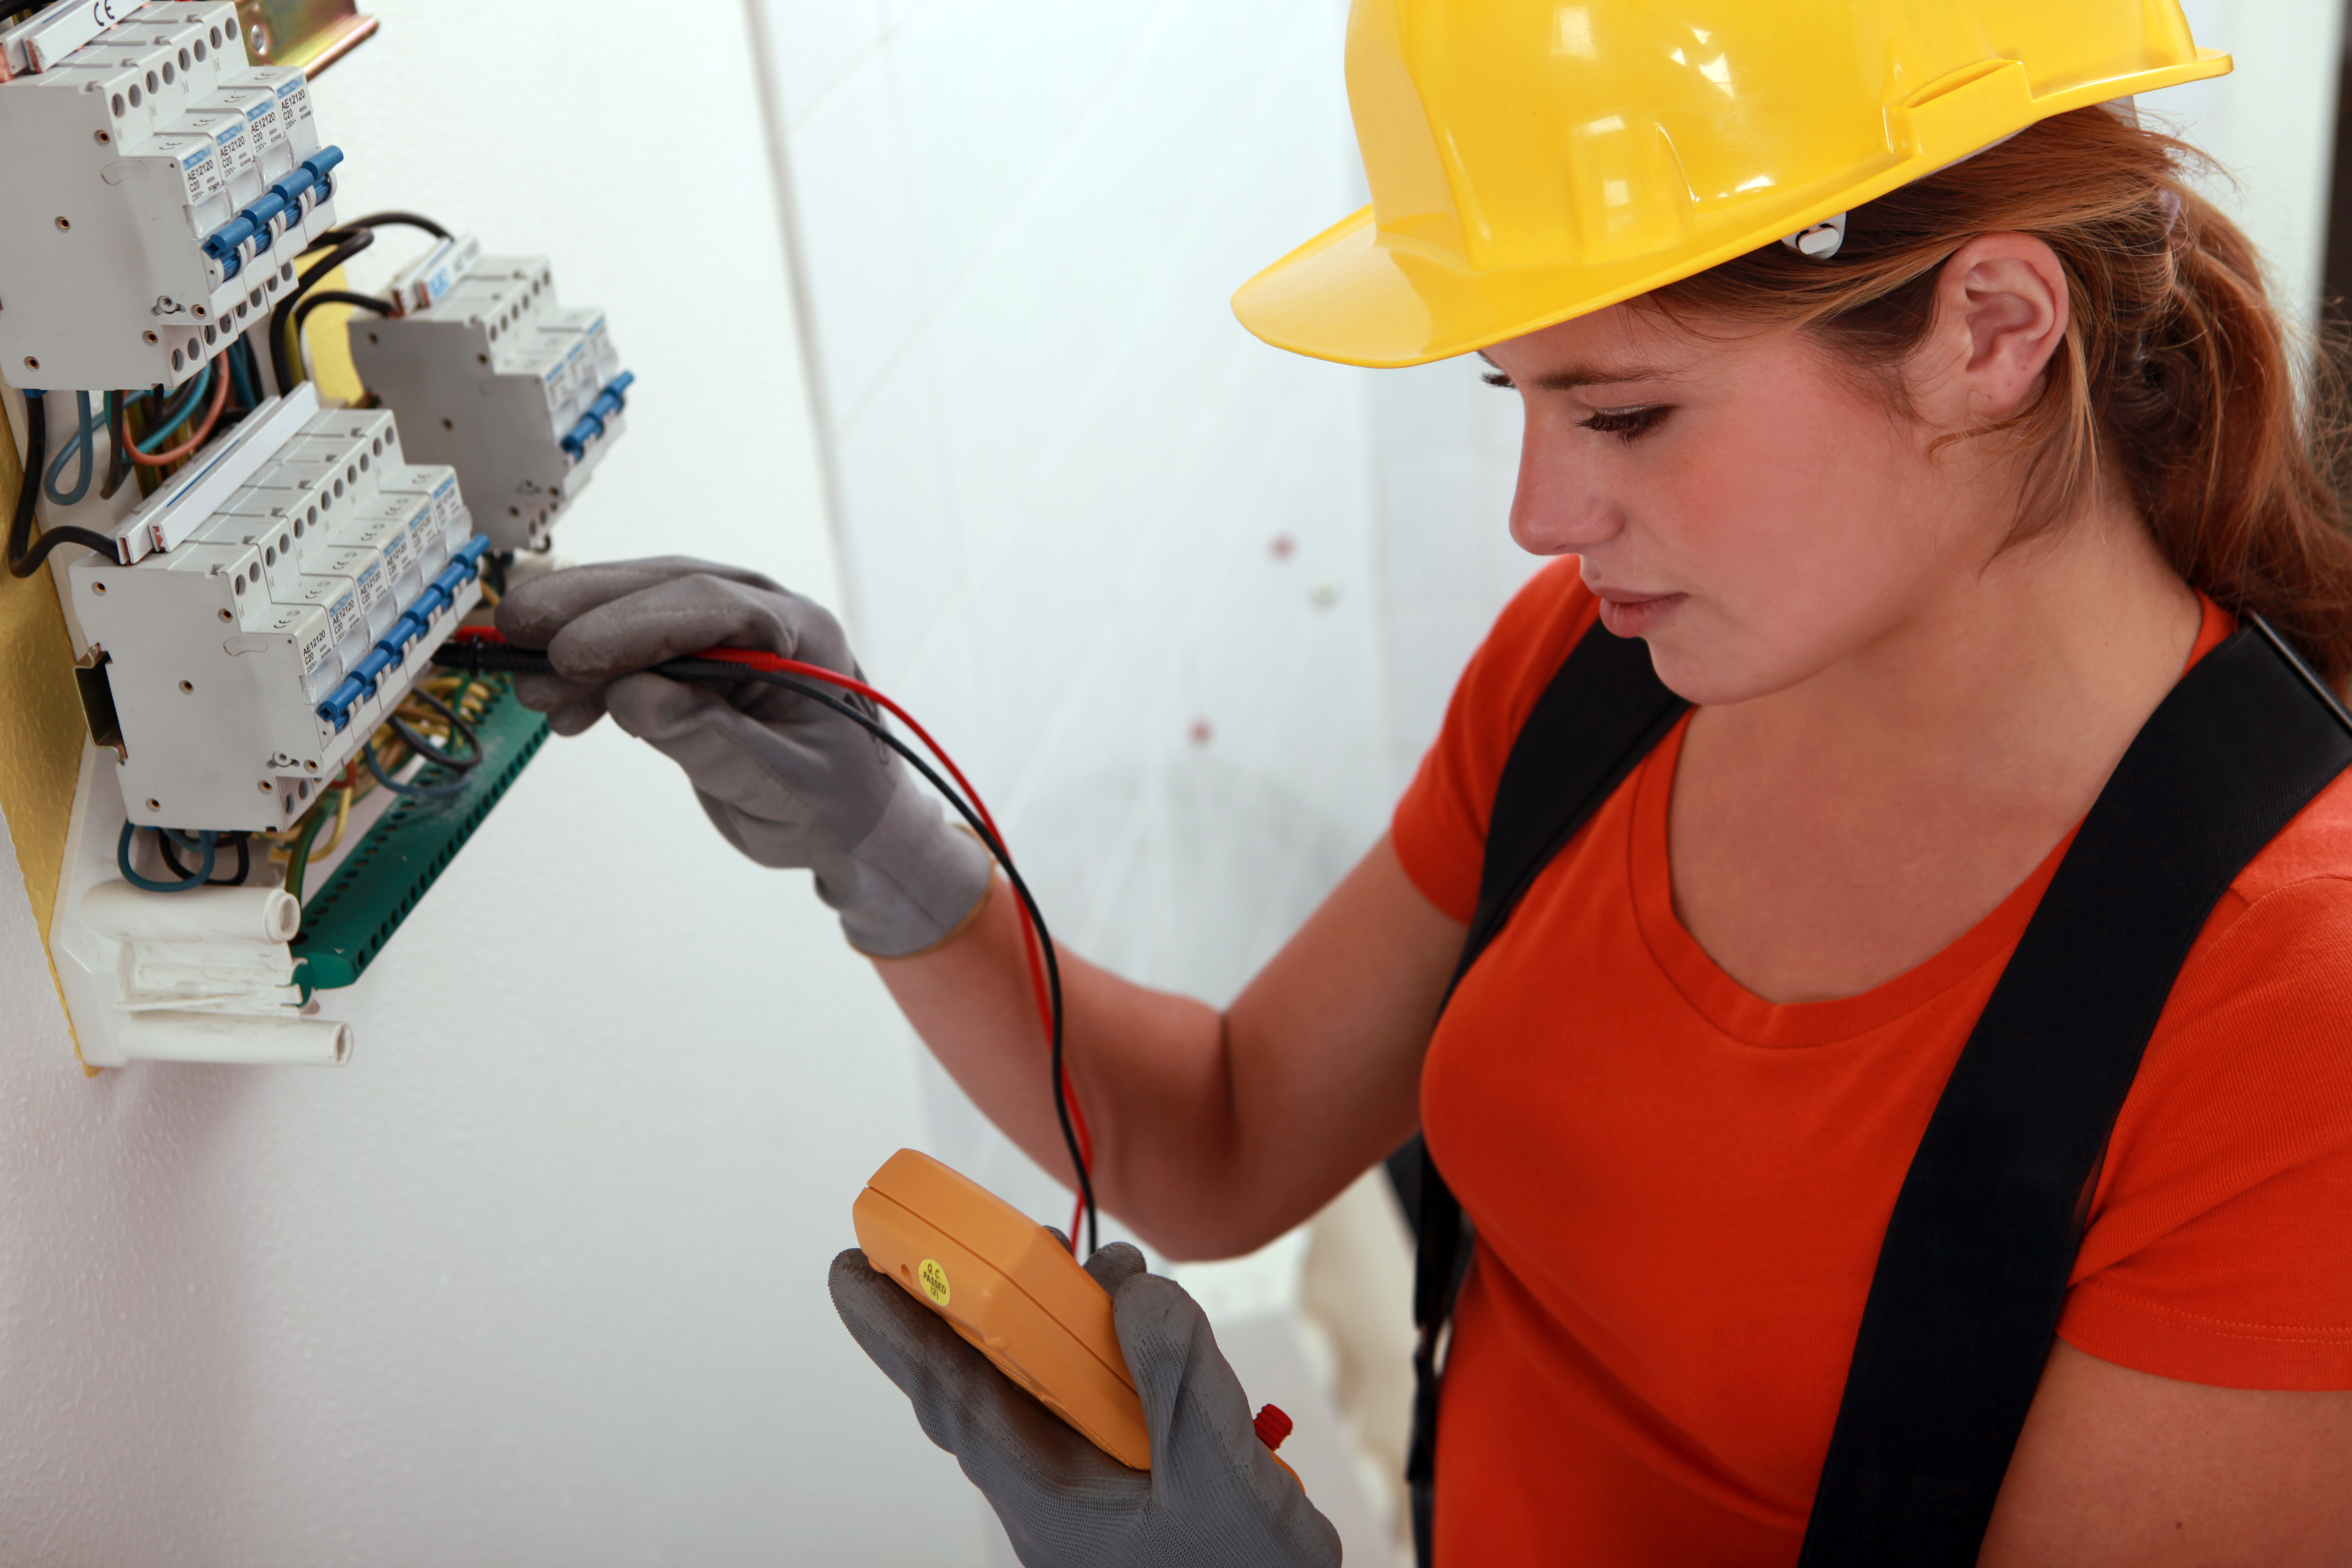 call your local electrician to assess the safety in your home